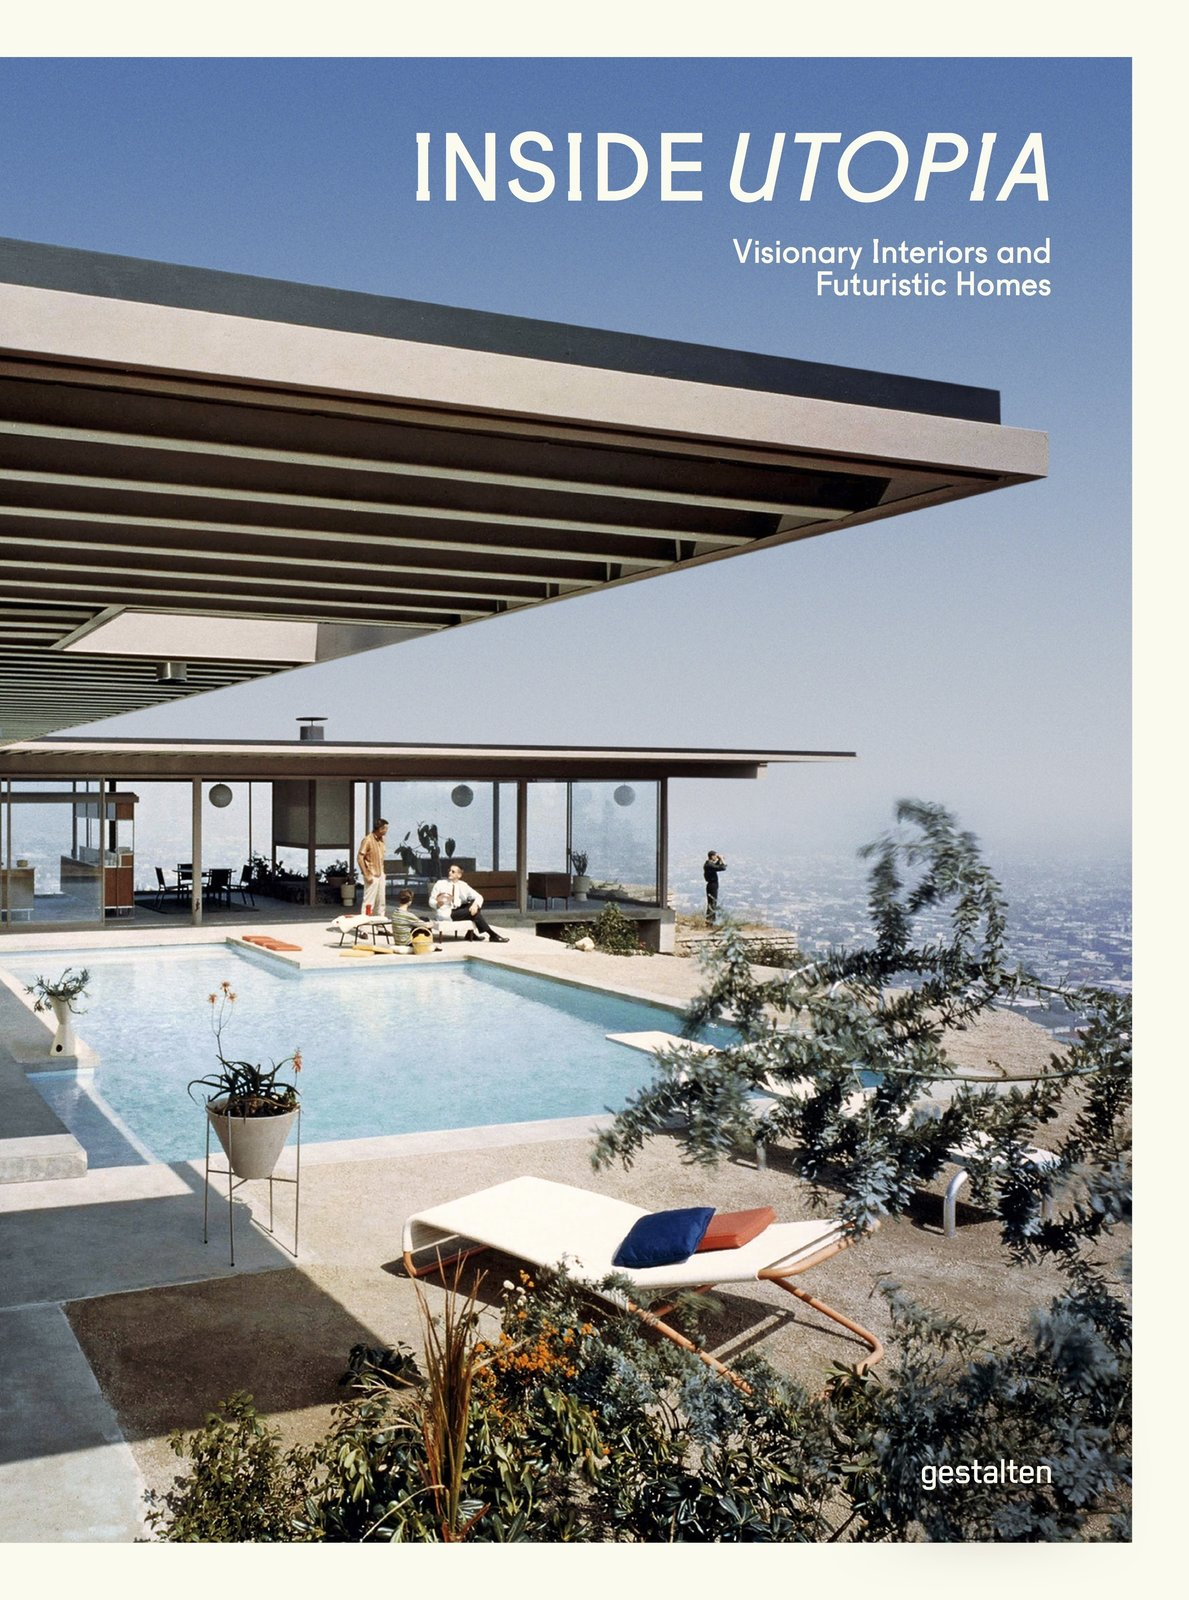 Inside Utopia, published by Gestalten. Cover photo of the Stahl House by Pierre Koenig, Los Angeles, CA, 1957.  Photo 2 of 11 in A New Book Celebrates Modernism With Futuristic Homes and Visionary Masterpieces